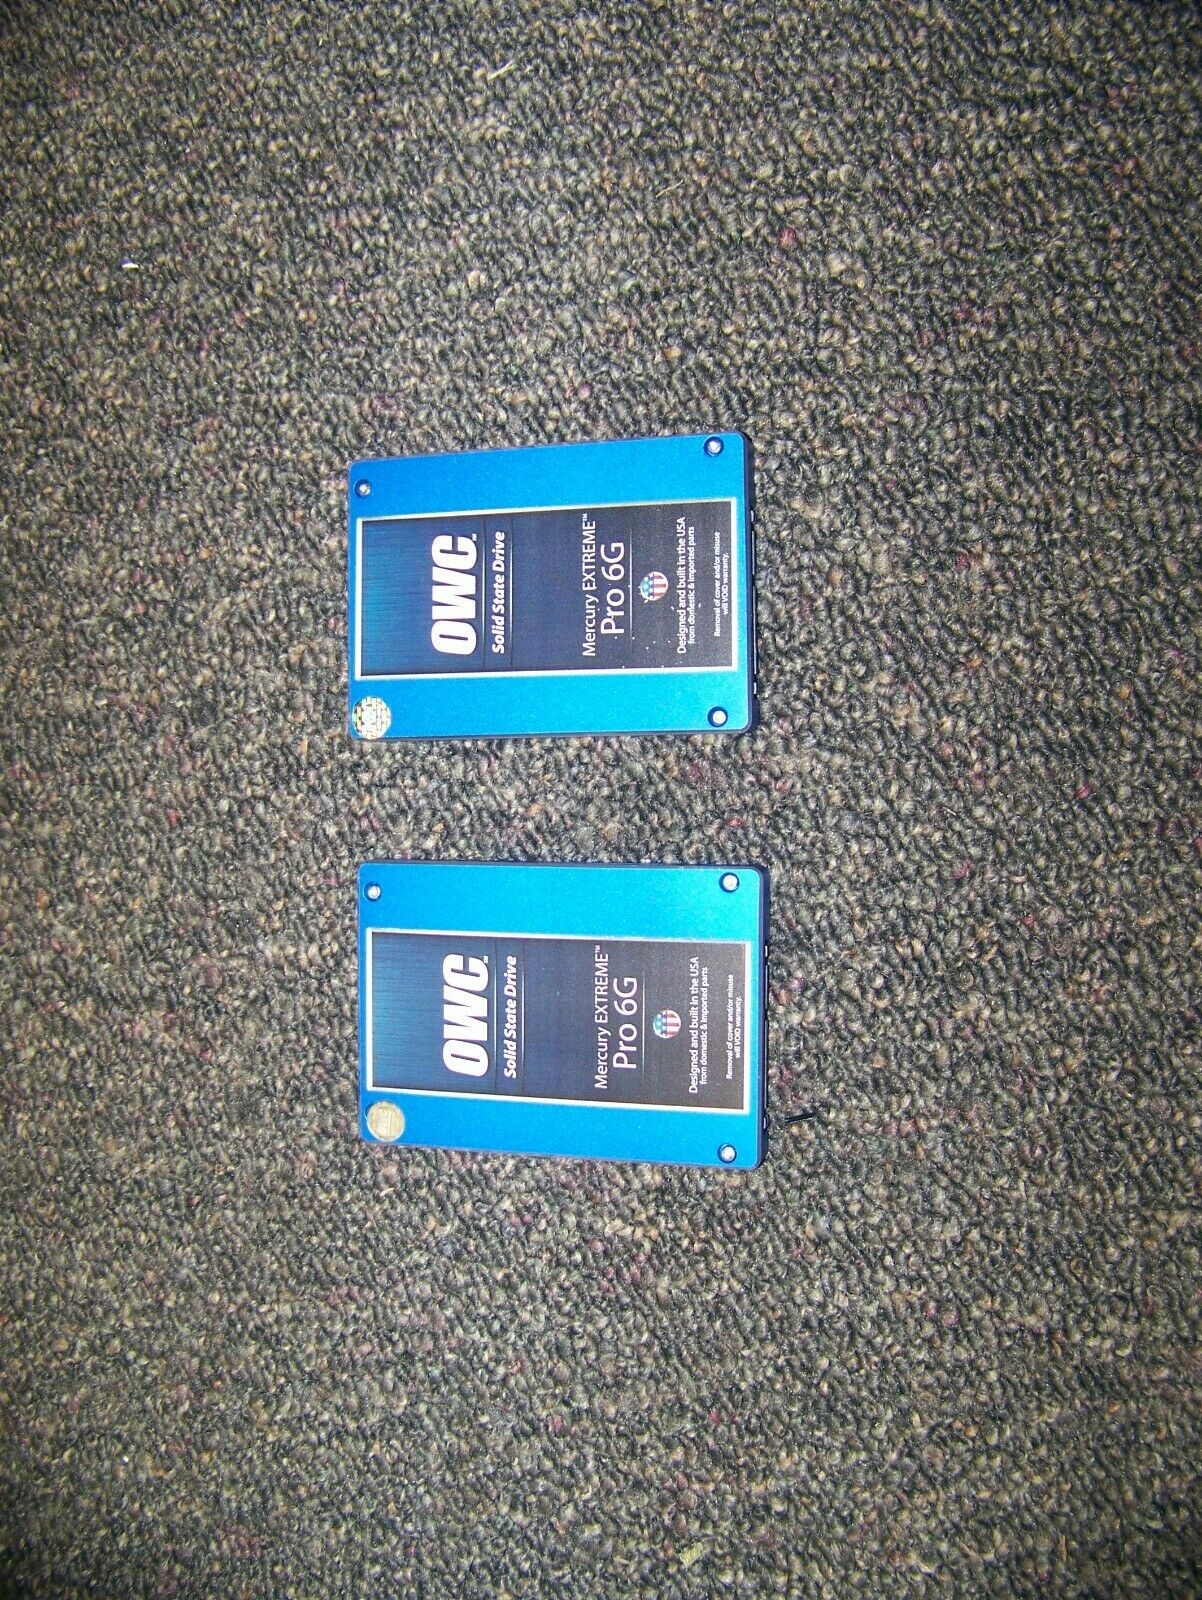 OWC Solid State Drive Mercury Extreme Pro 120GB OWCSSDDMX6G120T. Buy it now for 22.50